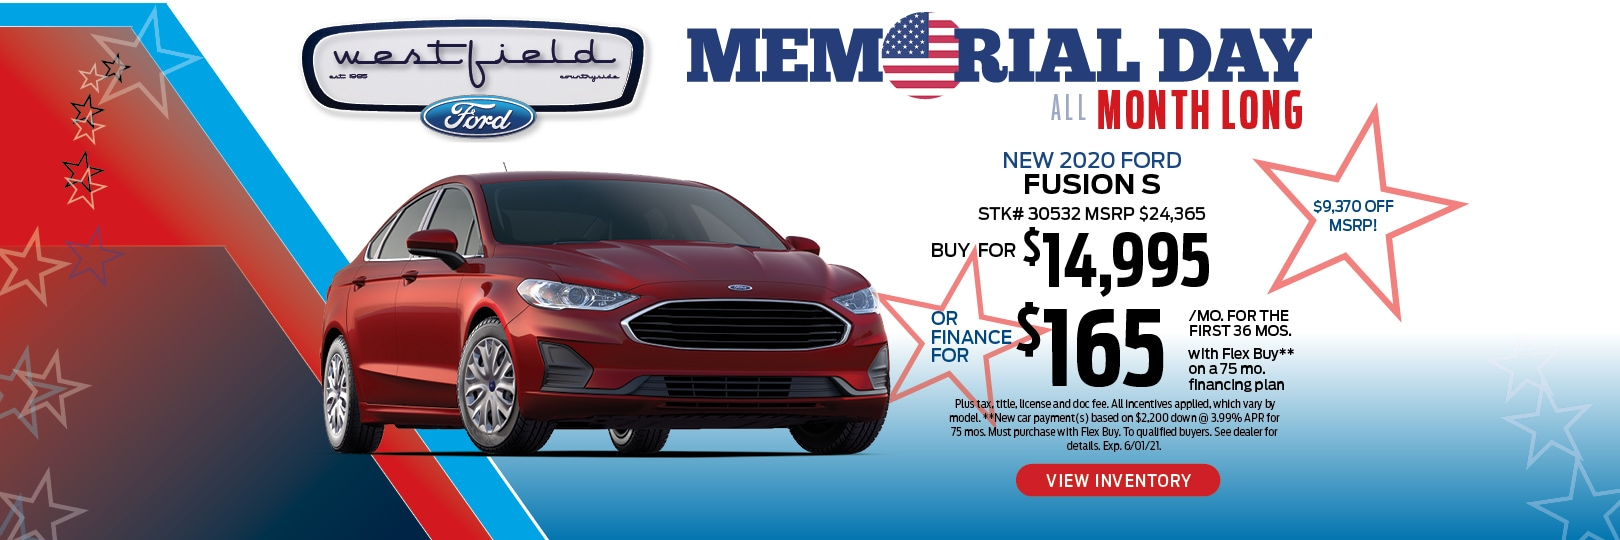 2020 Ford Fusion Buy Offer | Countryside, IL